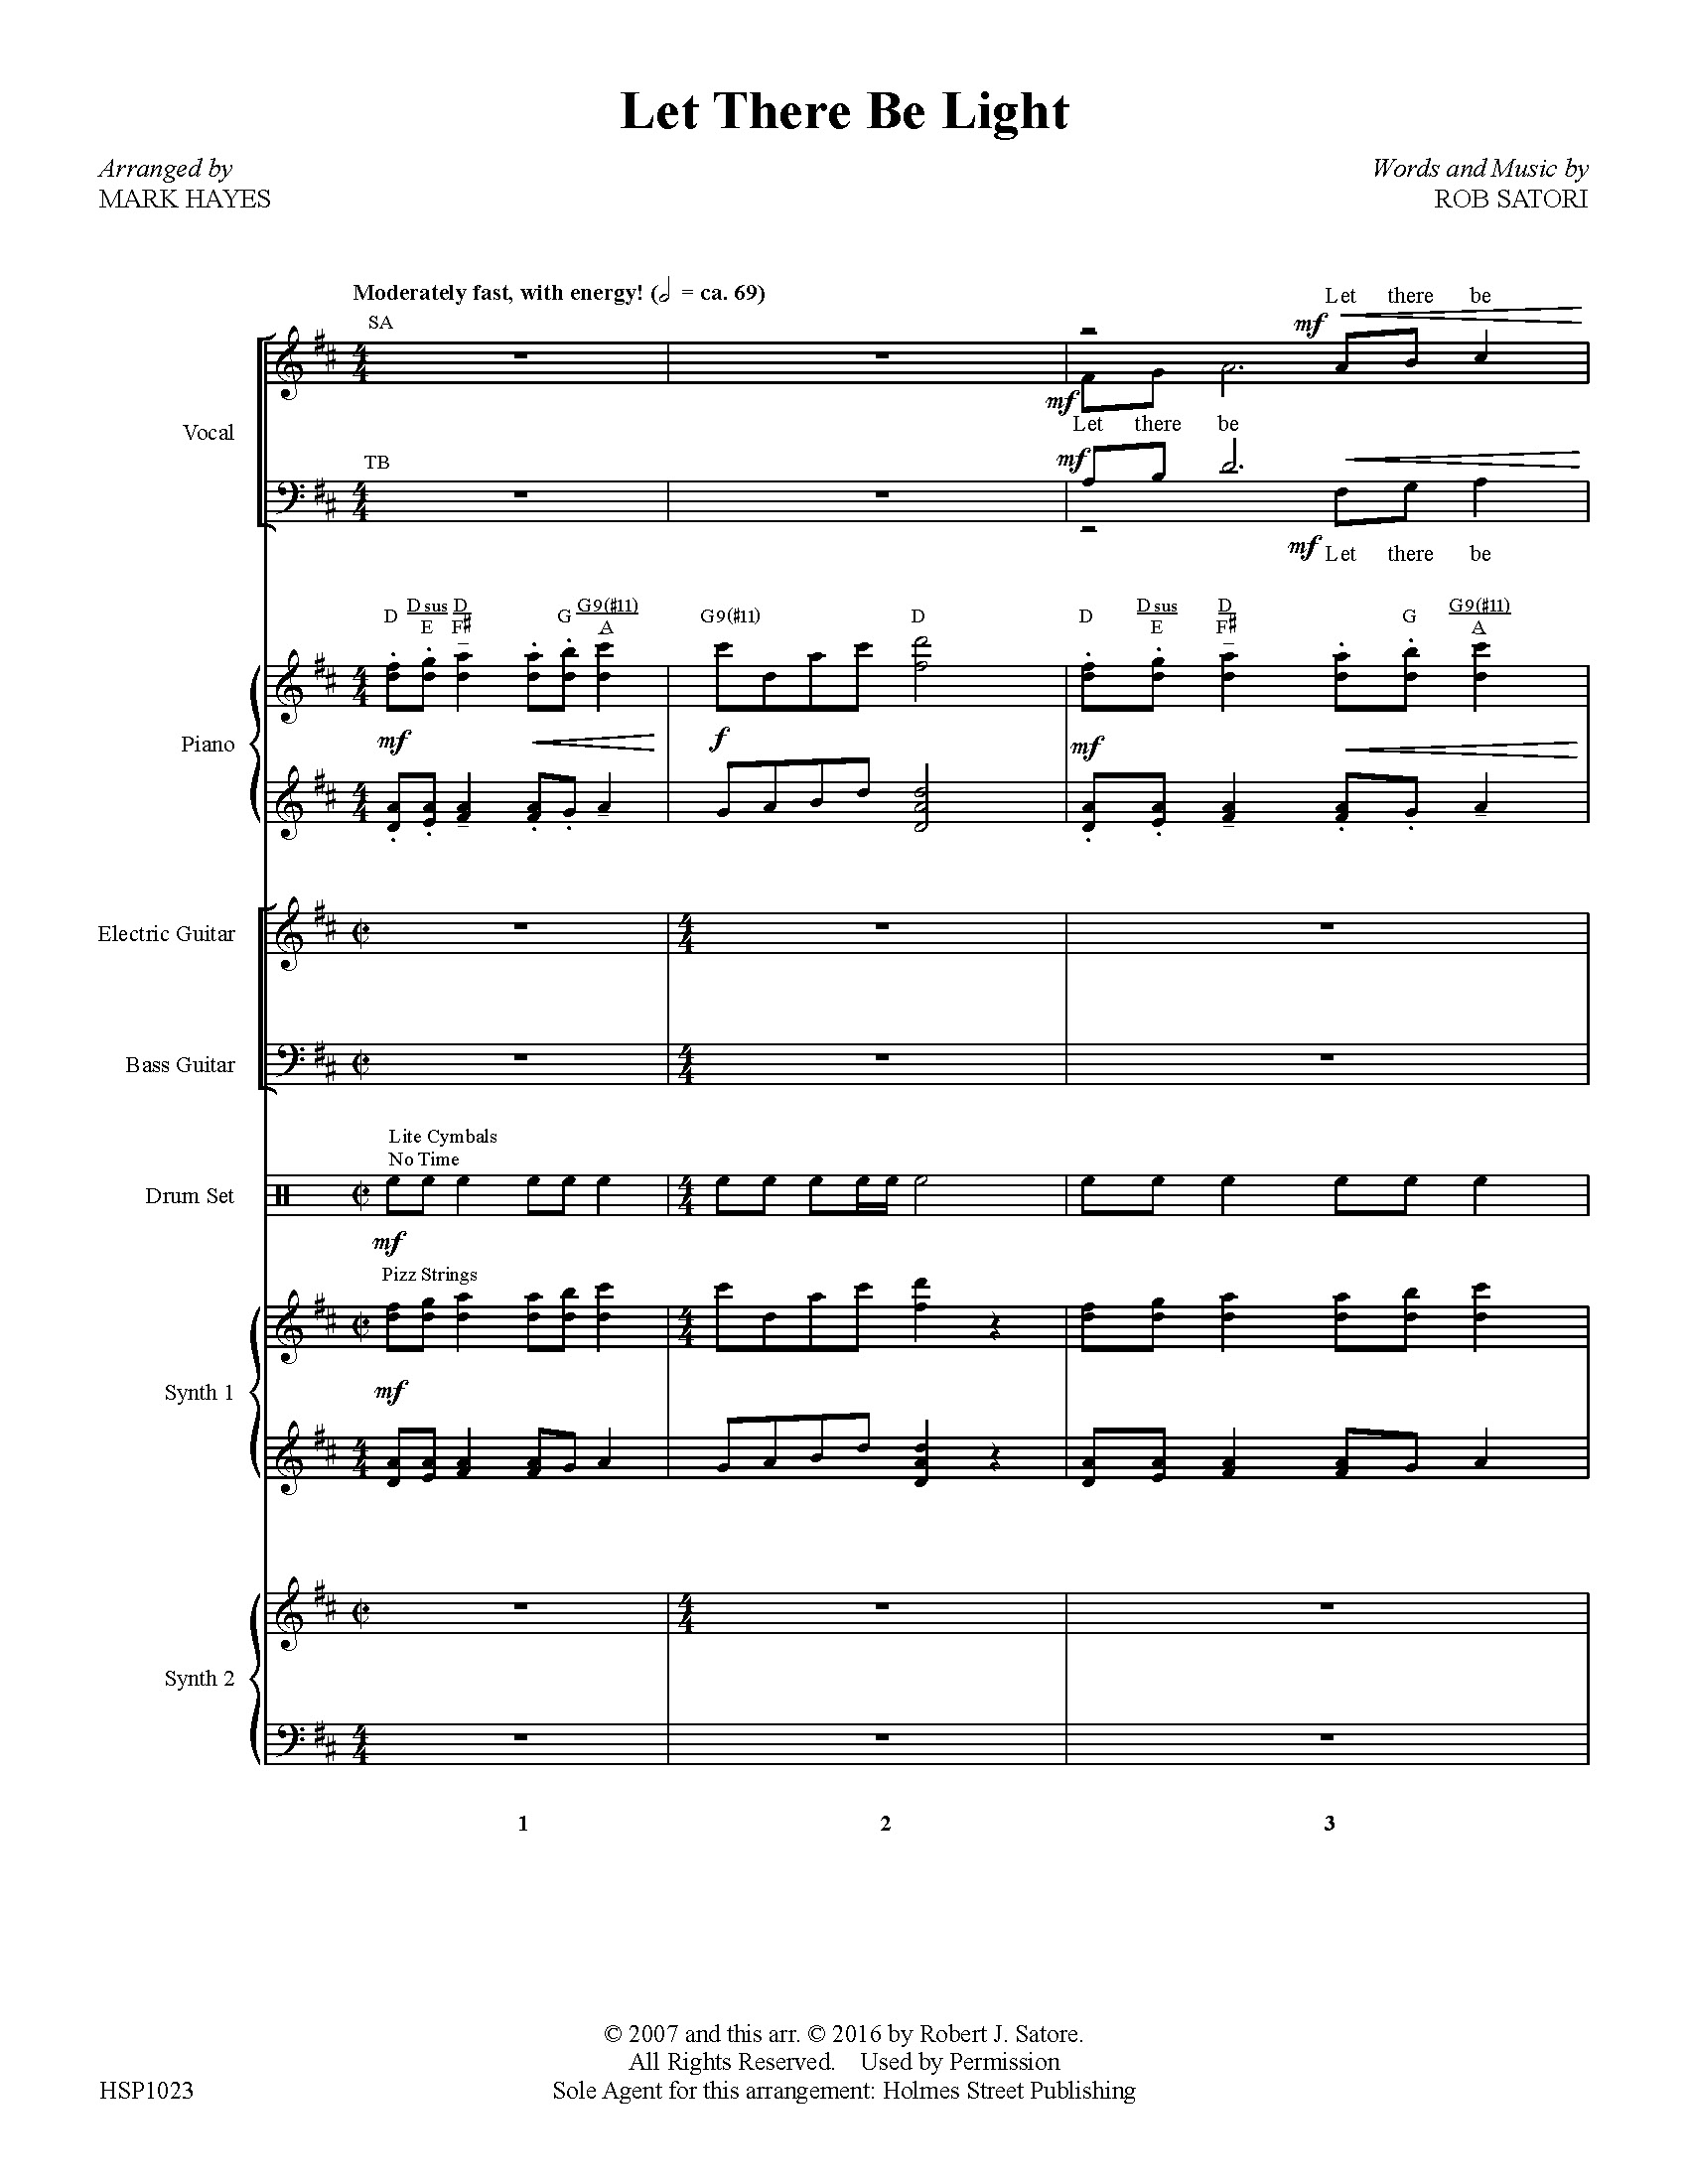 Let There Be Light - Instrumental Score and Parts